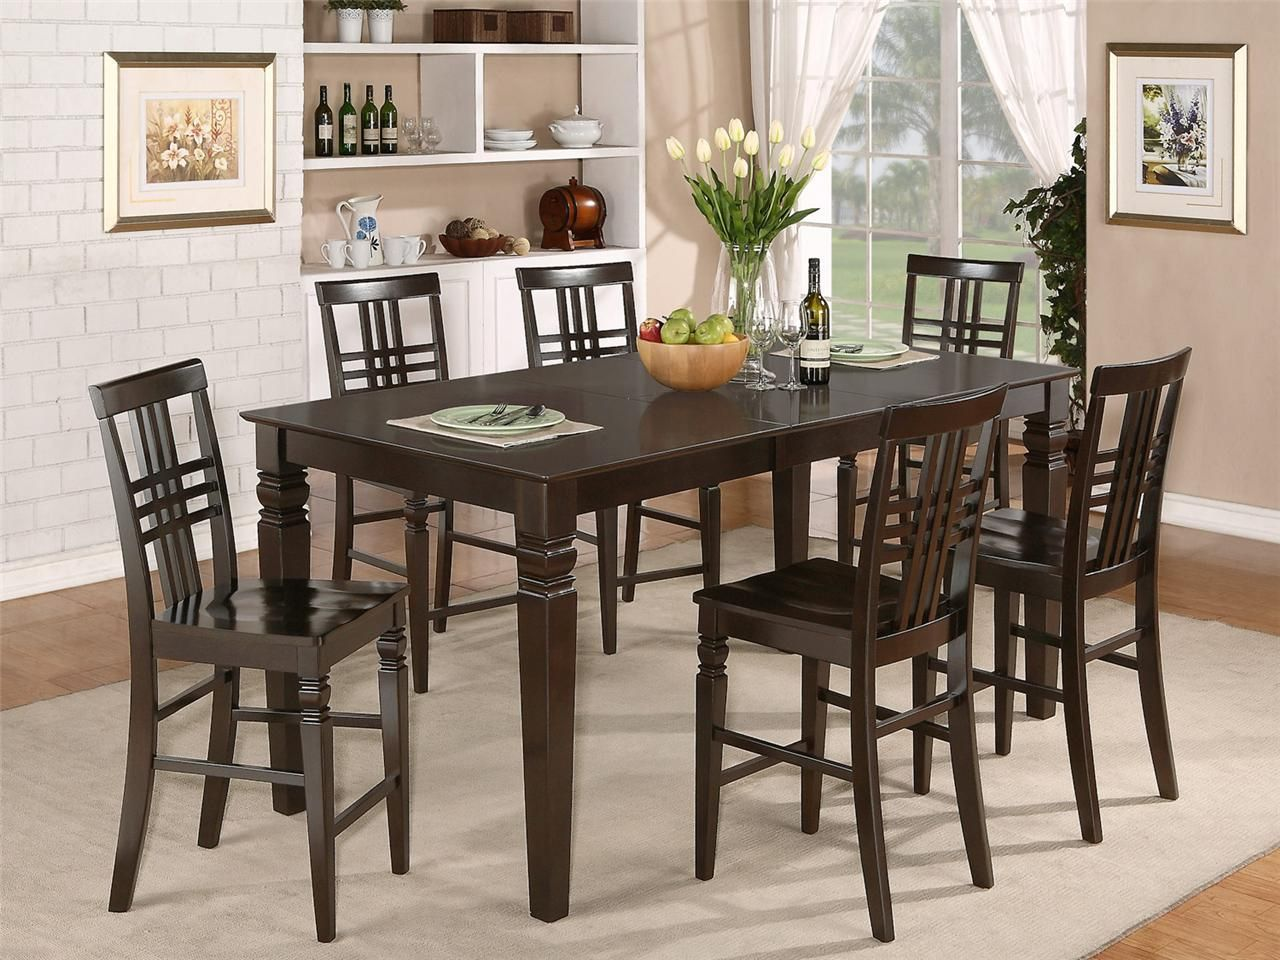 Bar Height Kitchen Tables   Cheap Kitchen Island Ideas Check More At Http://